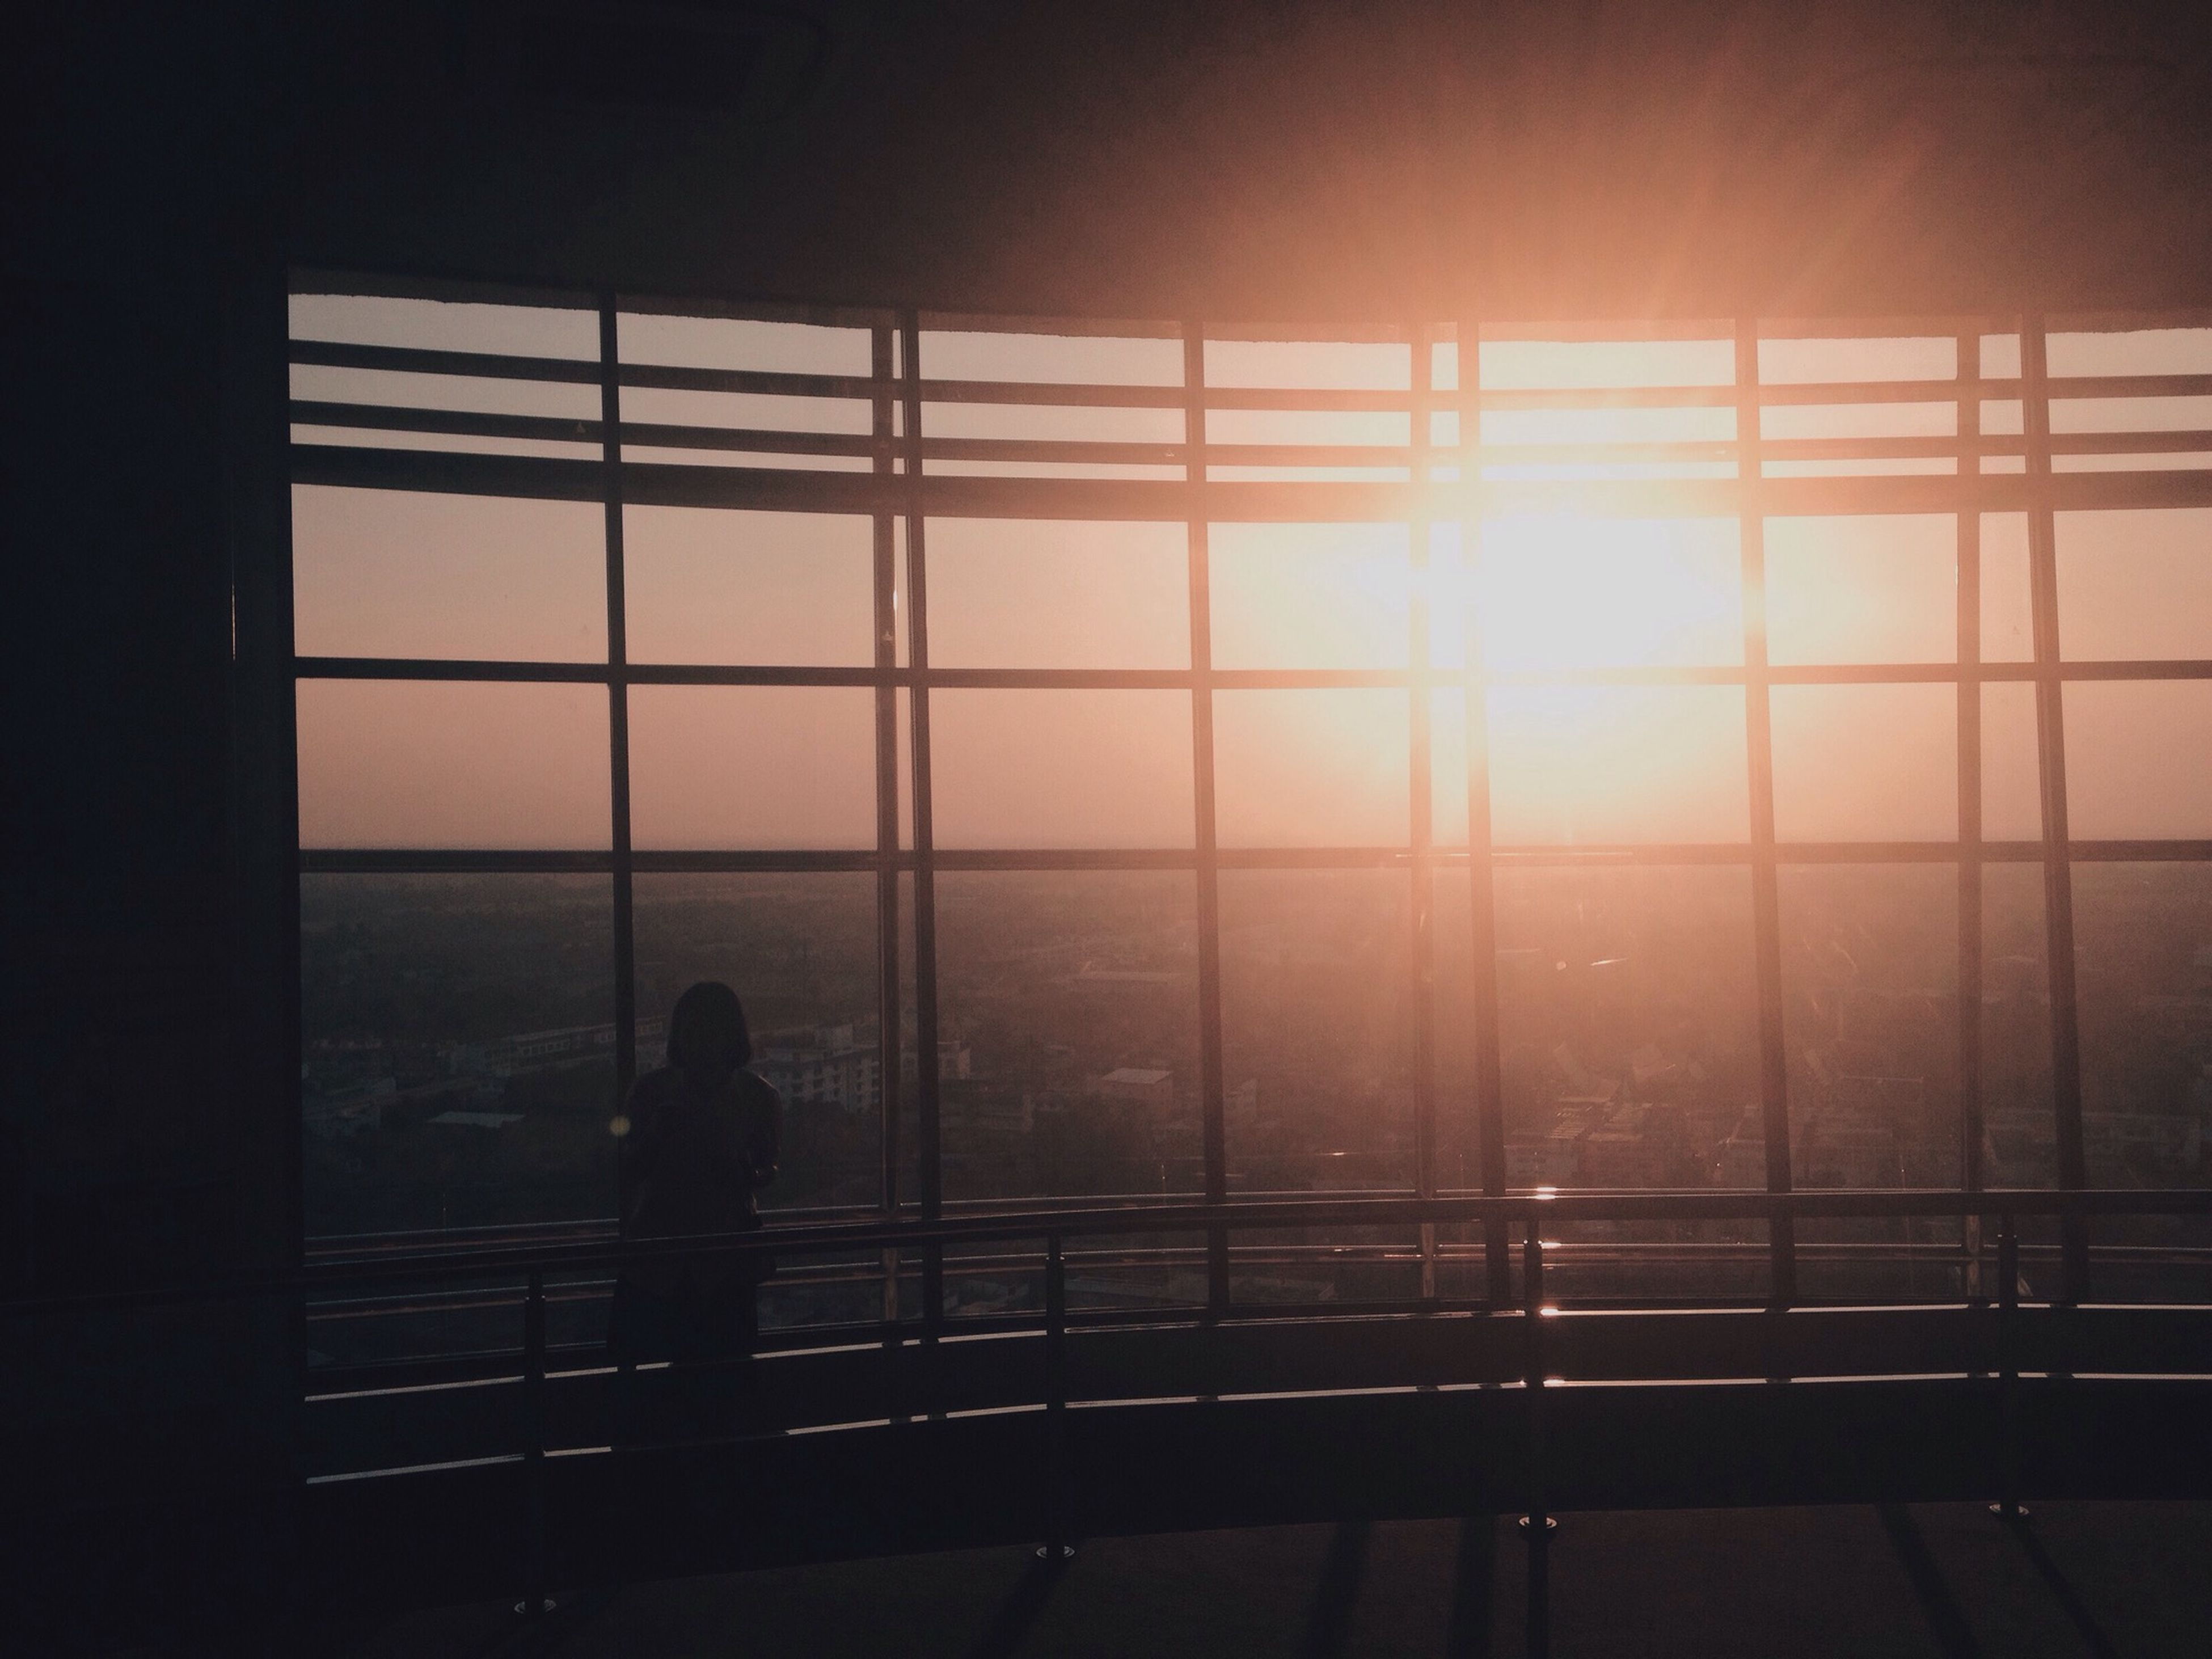 window, indoors, glass - material, sunset, transparent, sun, sunlight, railing, sky, water, reflection, horizon over water, built structure, sea, architecture, silhouette, glass, nature, sunbeam, lens flare